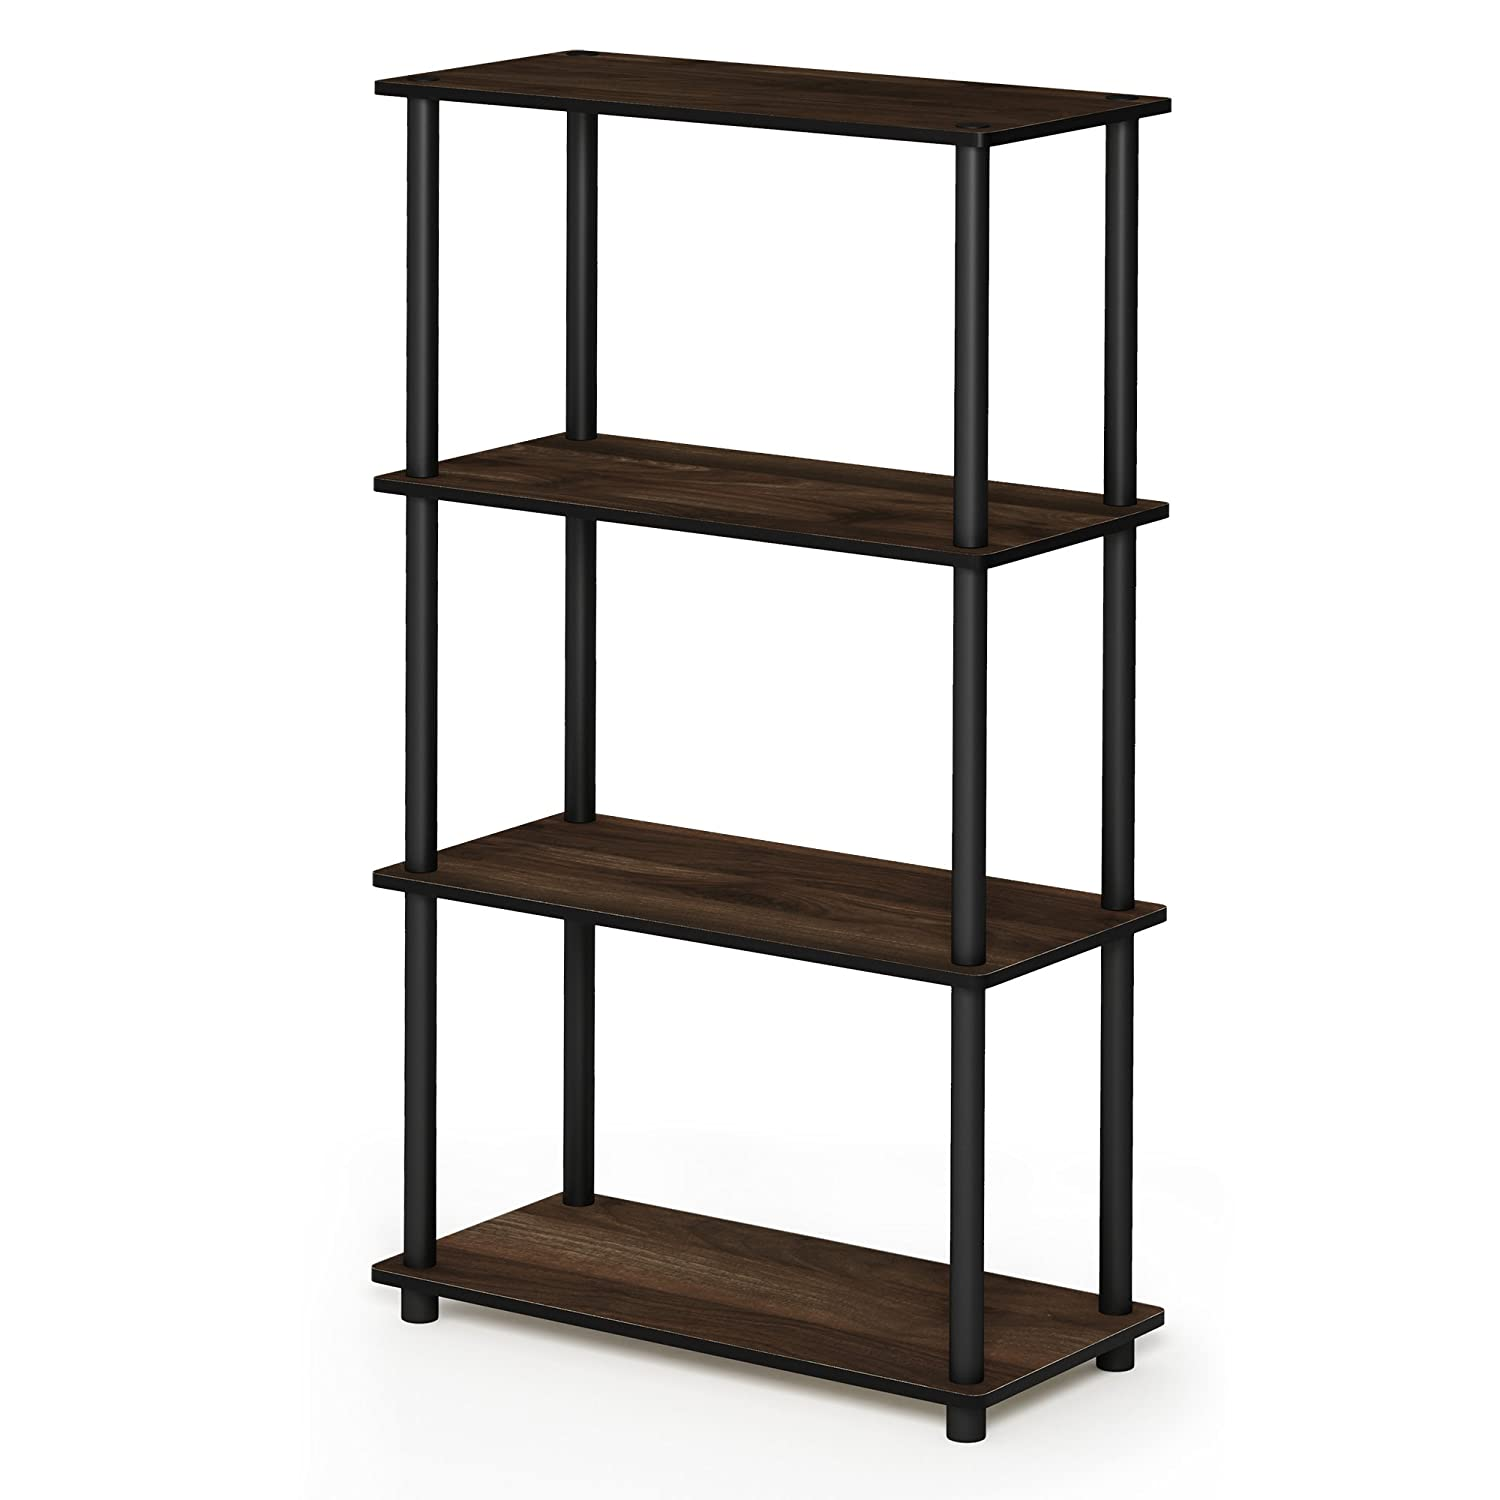 Columbia Walnut Black 4-Tier Single Furinno 17091BE WH Turn-N-Tube 5-Tier Compact Multipurpose Shelf, Single, Beech White